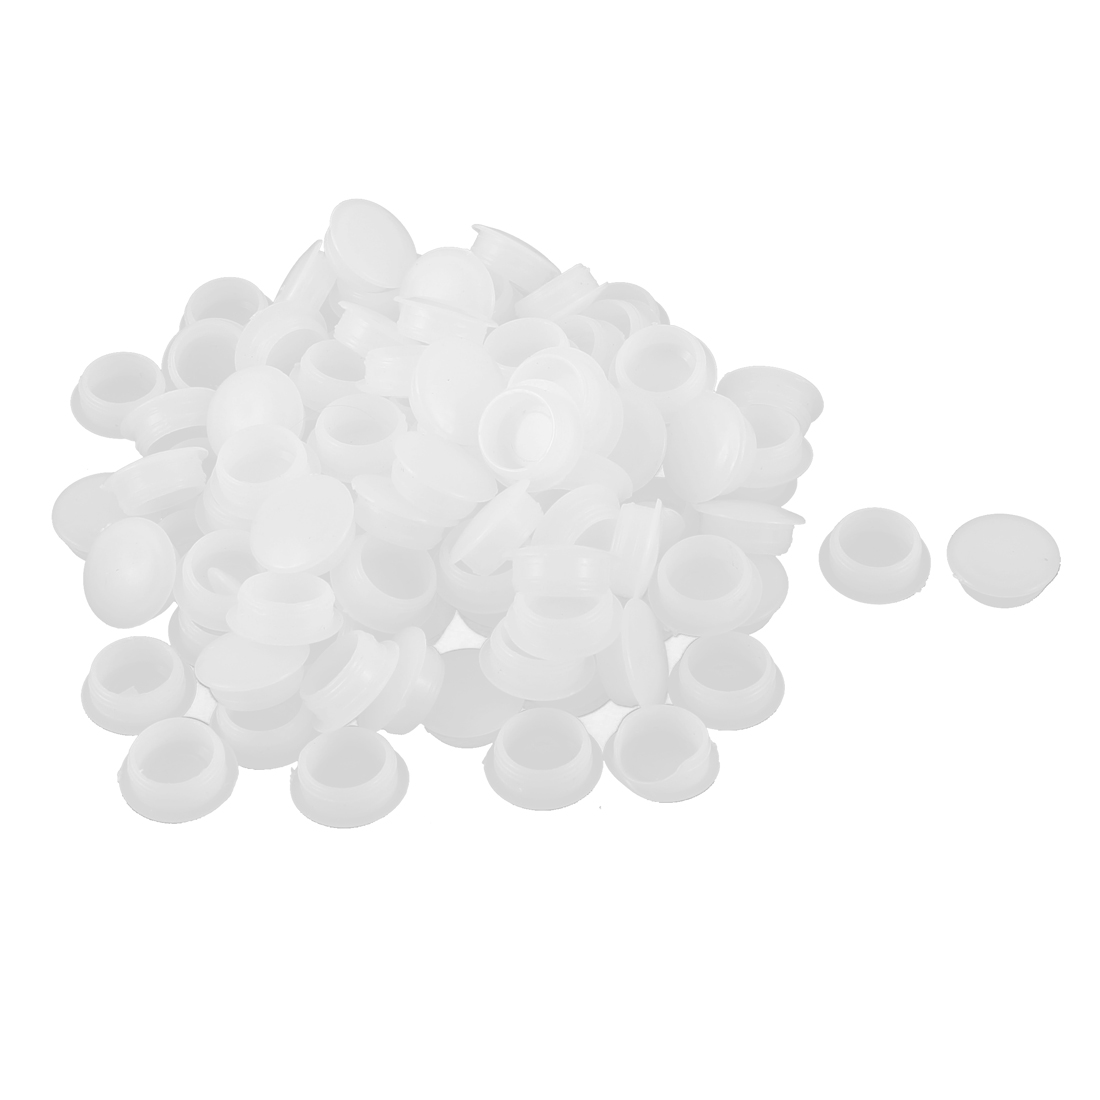 Plastic Round Head Hole End Cap Cover Pipe Tube Inserts Off White 15mm 100pcs